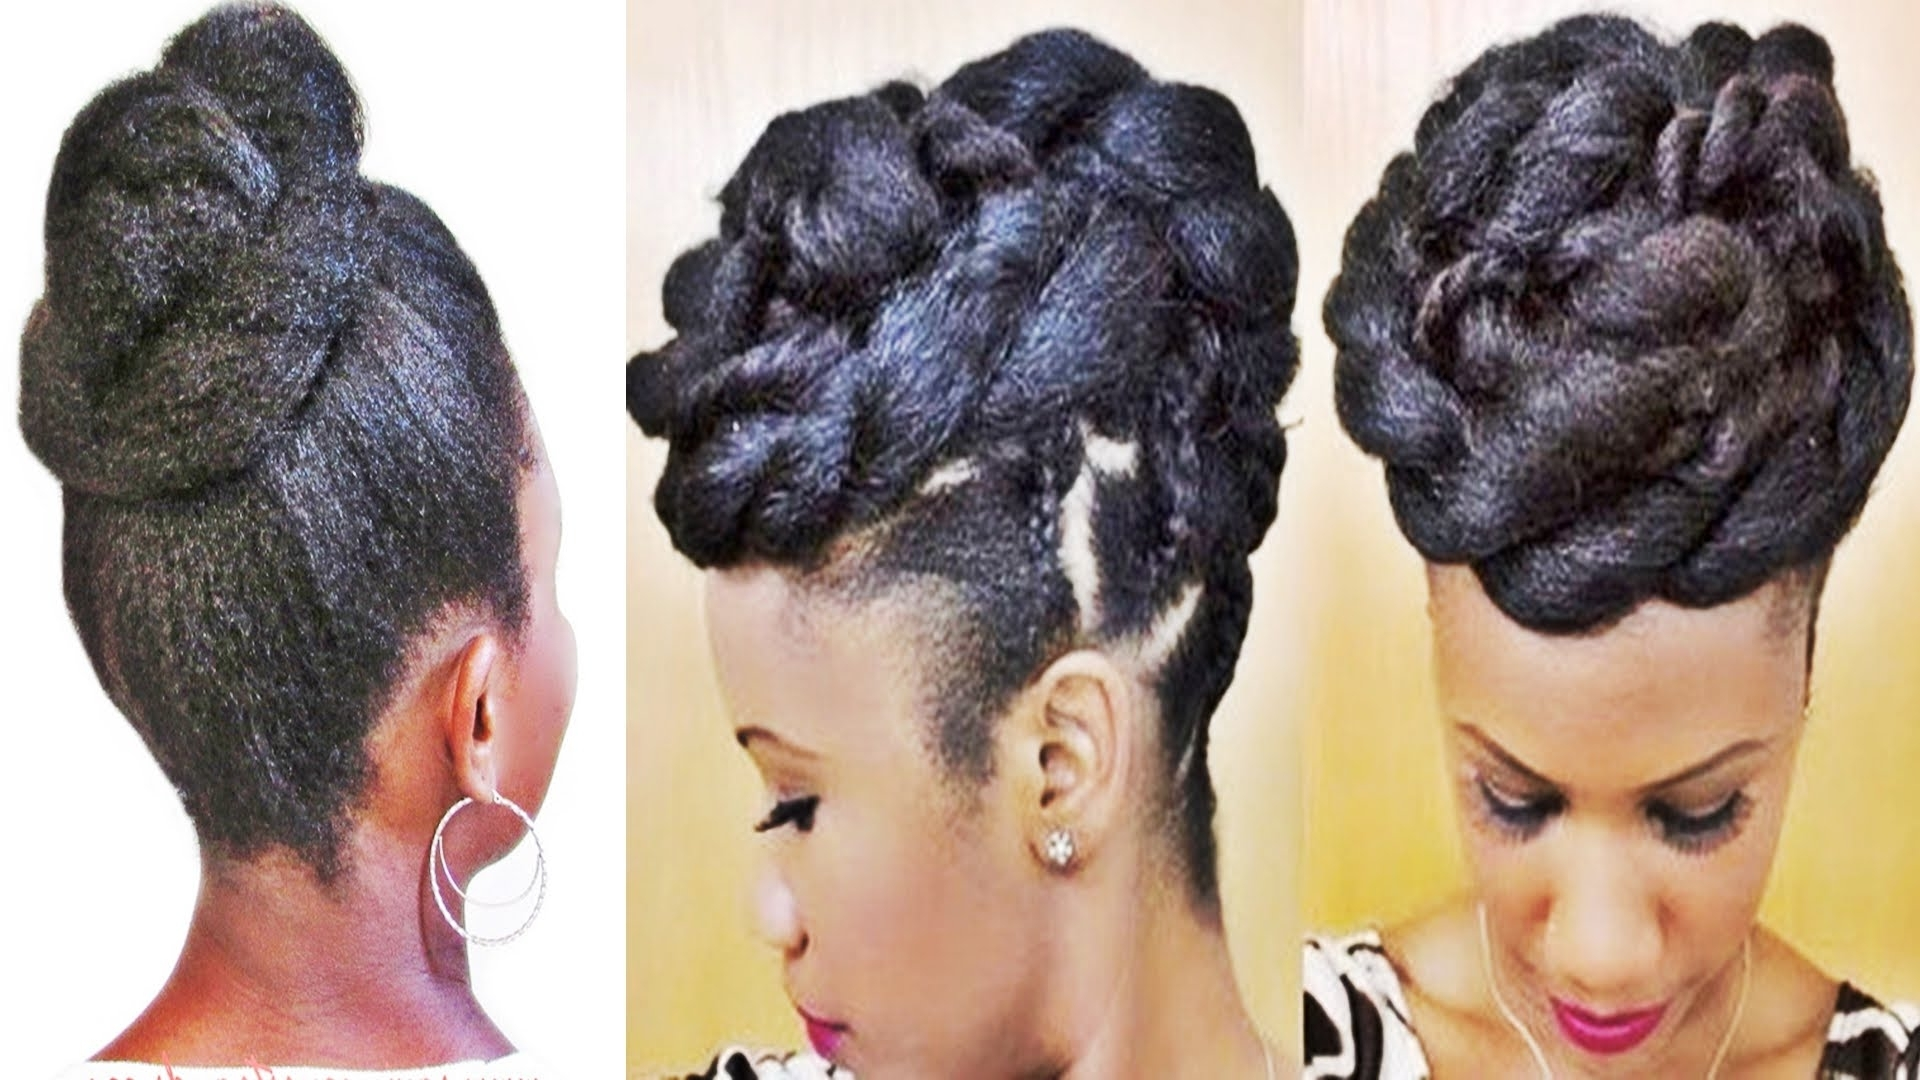 Braids And Twists Updo Hairstyle For Black Women – Youtube Throughout Black Updo Hairstyles (View 3 of 15)